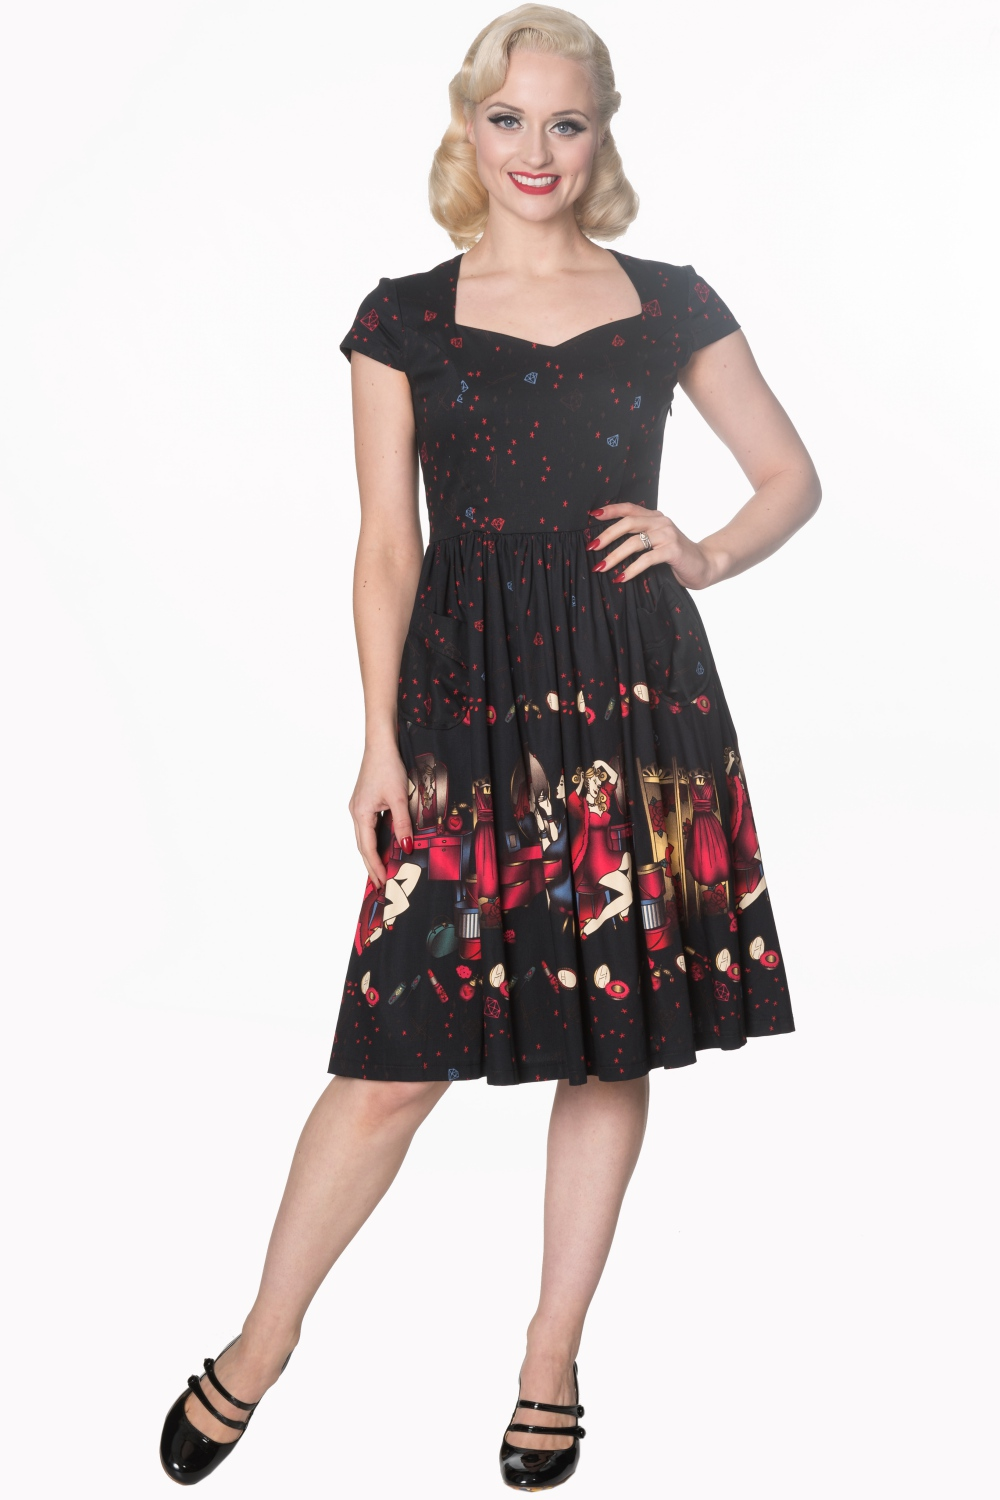 Dancing Days Black Vanity 50s Dress